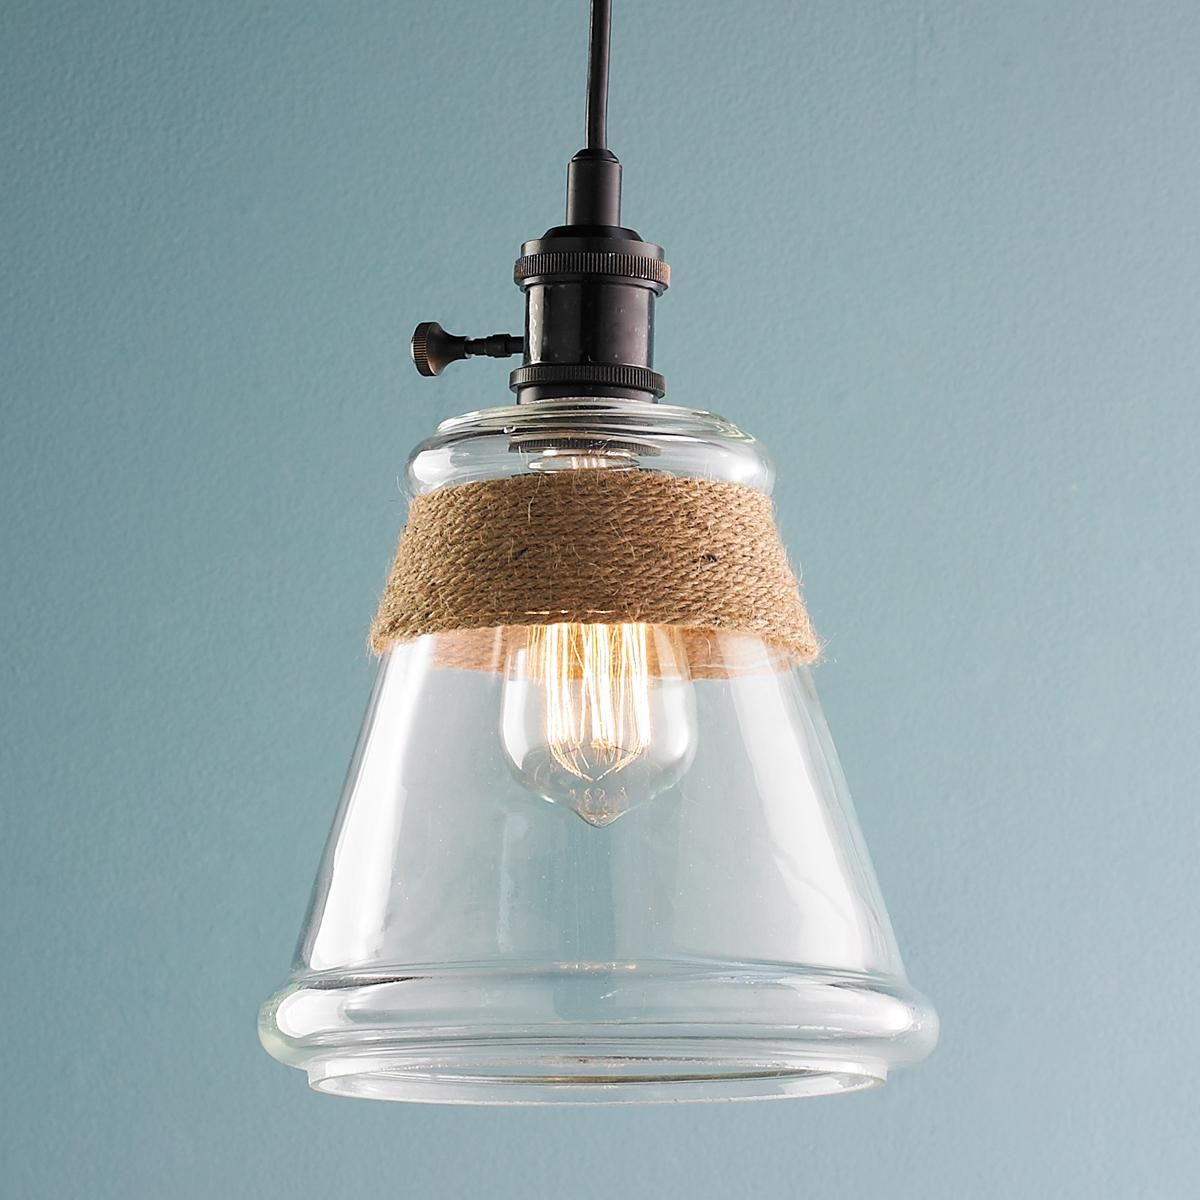 Clear Glass & Rope Pendant Light | Glass shades, Glass and Hardware